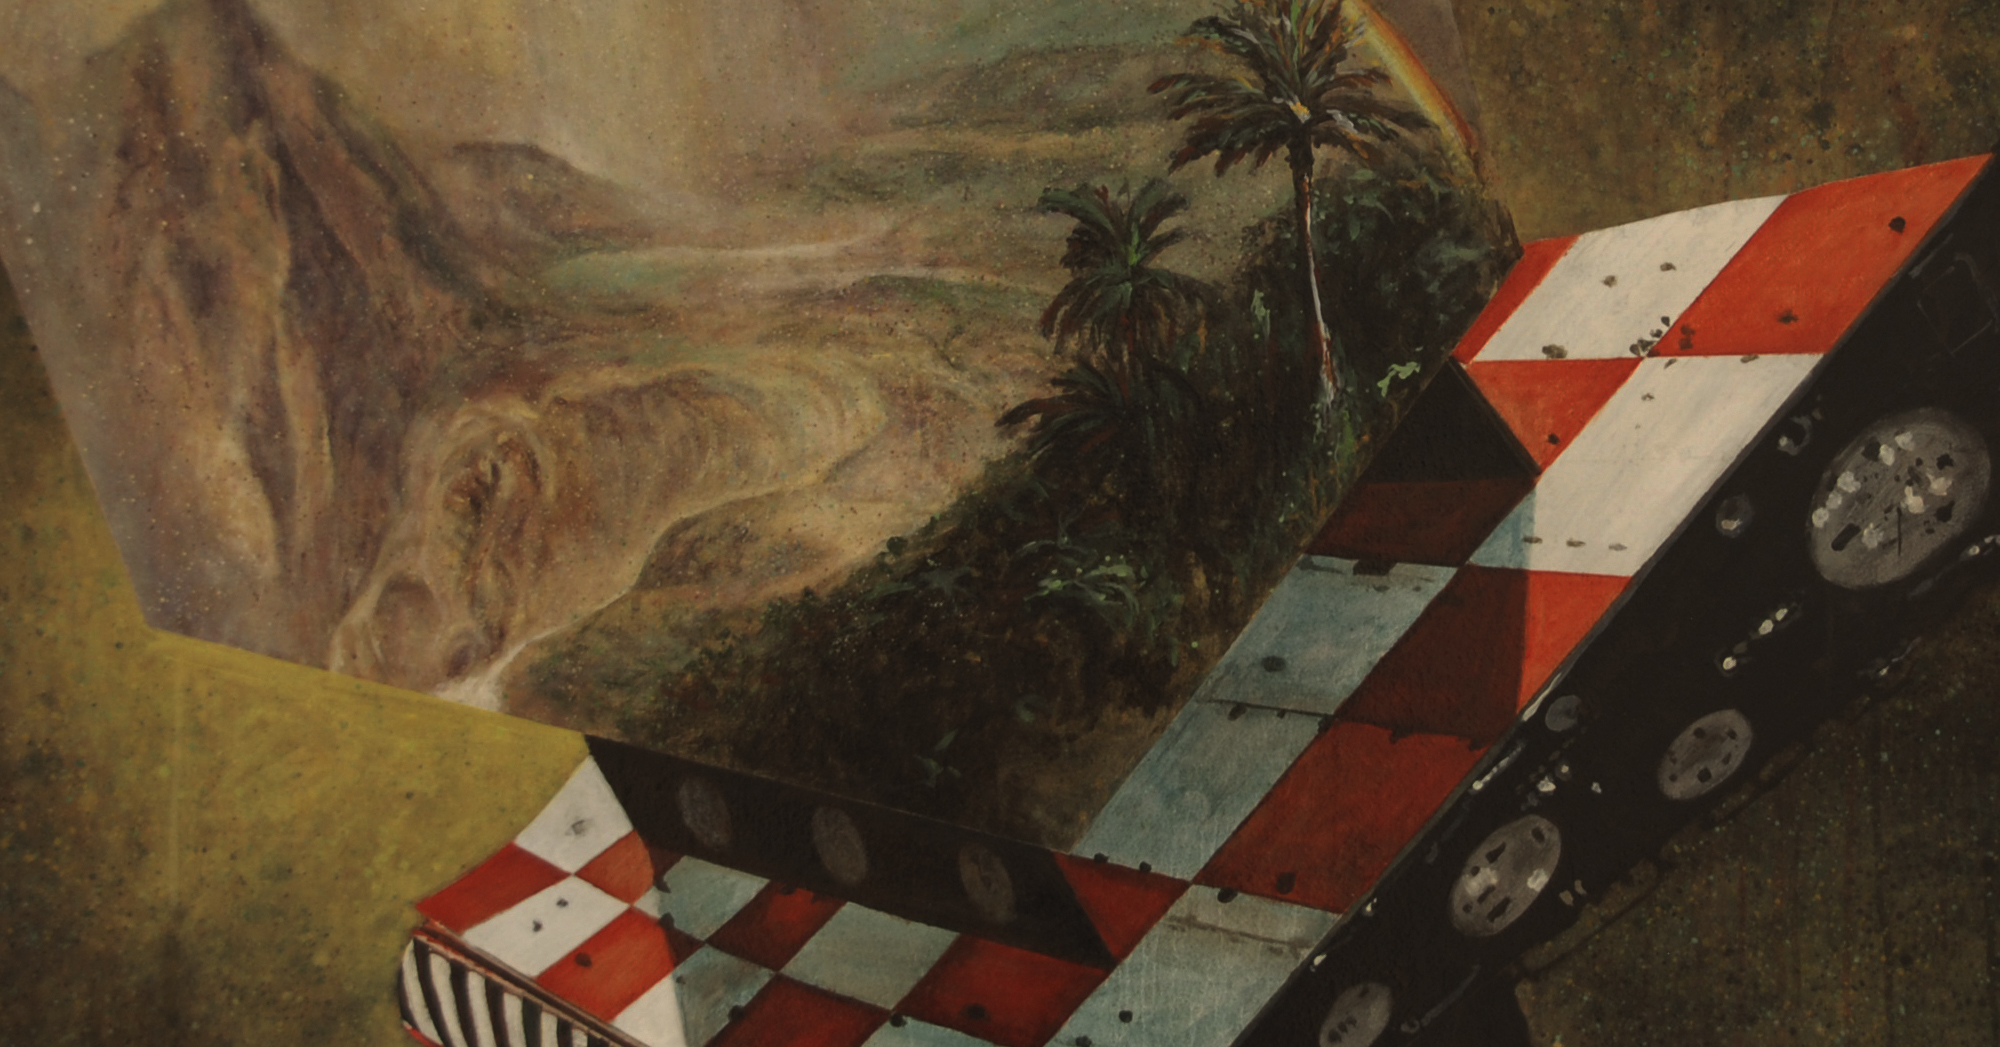 Geoff Diego Litherland, Hold us still when everything spins, 2012, Oil on Canvas, 100 x 140cm, £1,850